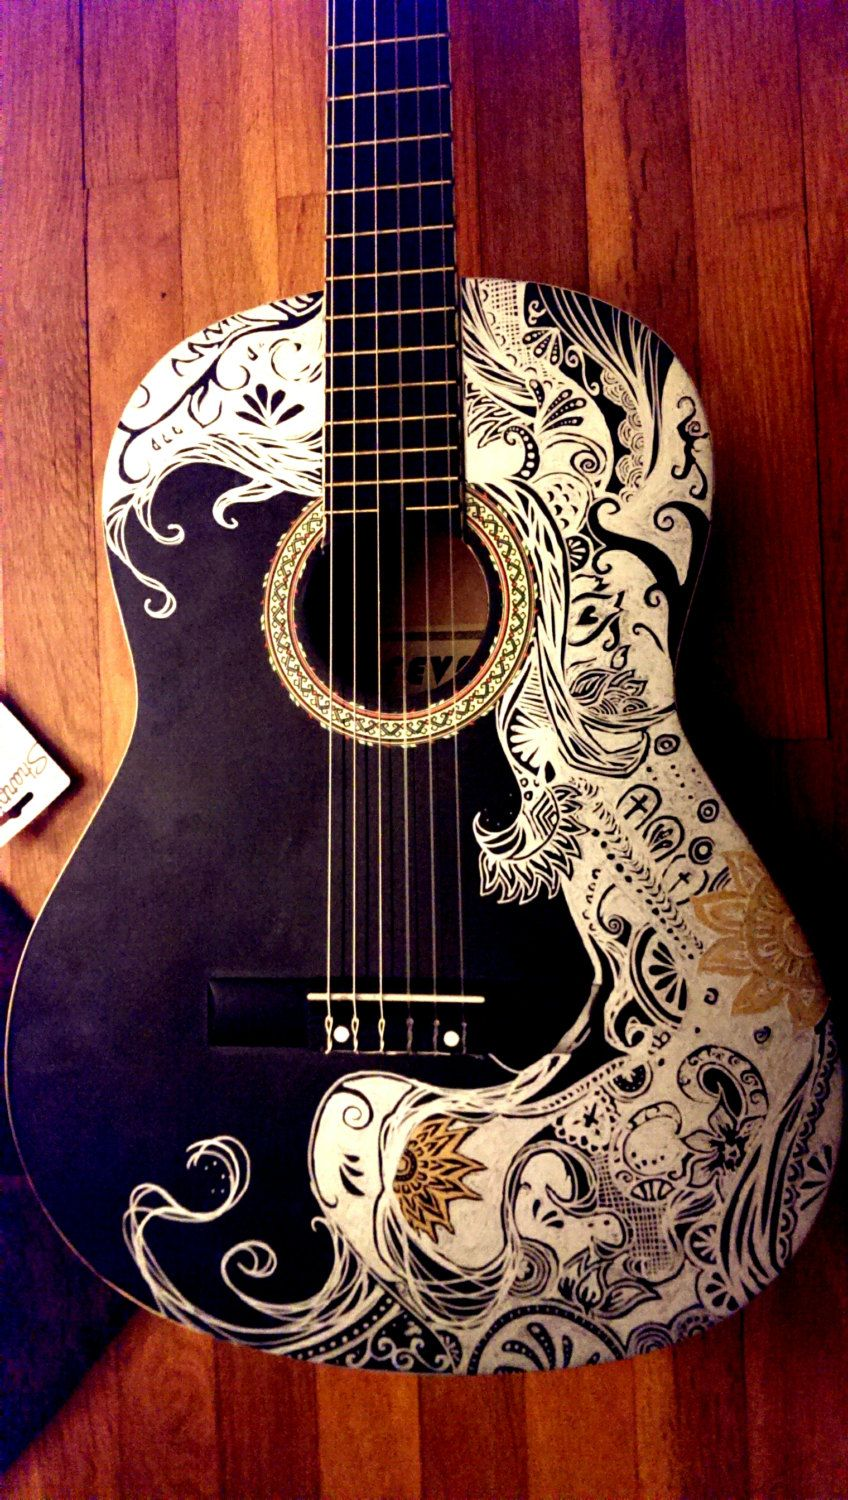 sharpie guitar abstract la negra by thanotech on etsy arte guitar painting guitar. Black Bedroom Furniture Sets. Home Design Ideas